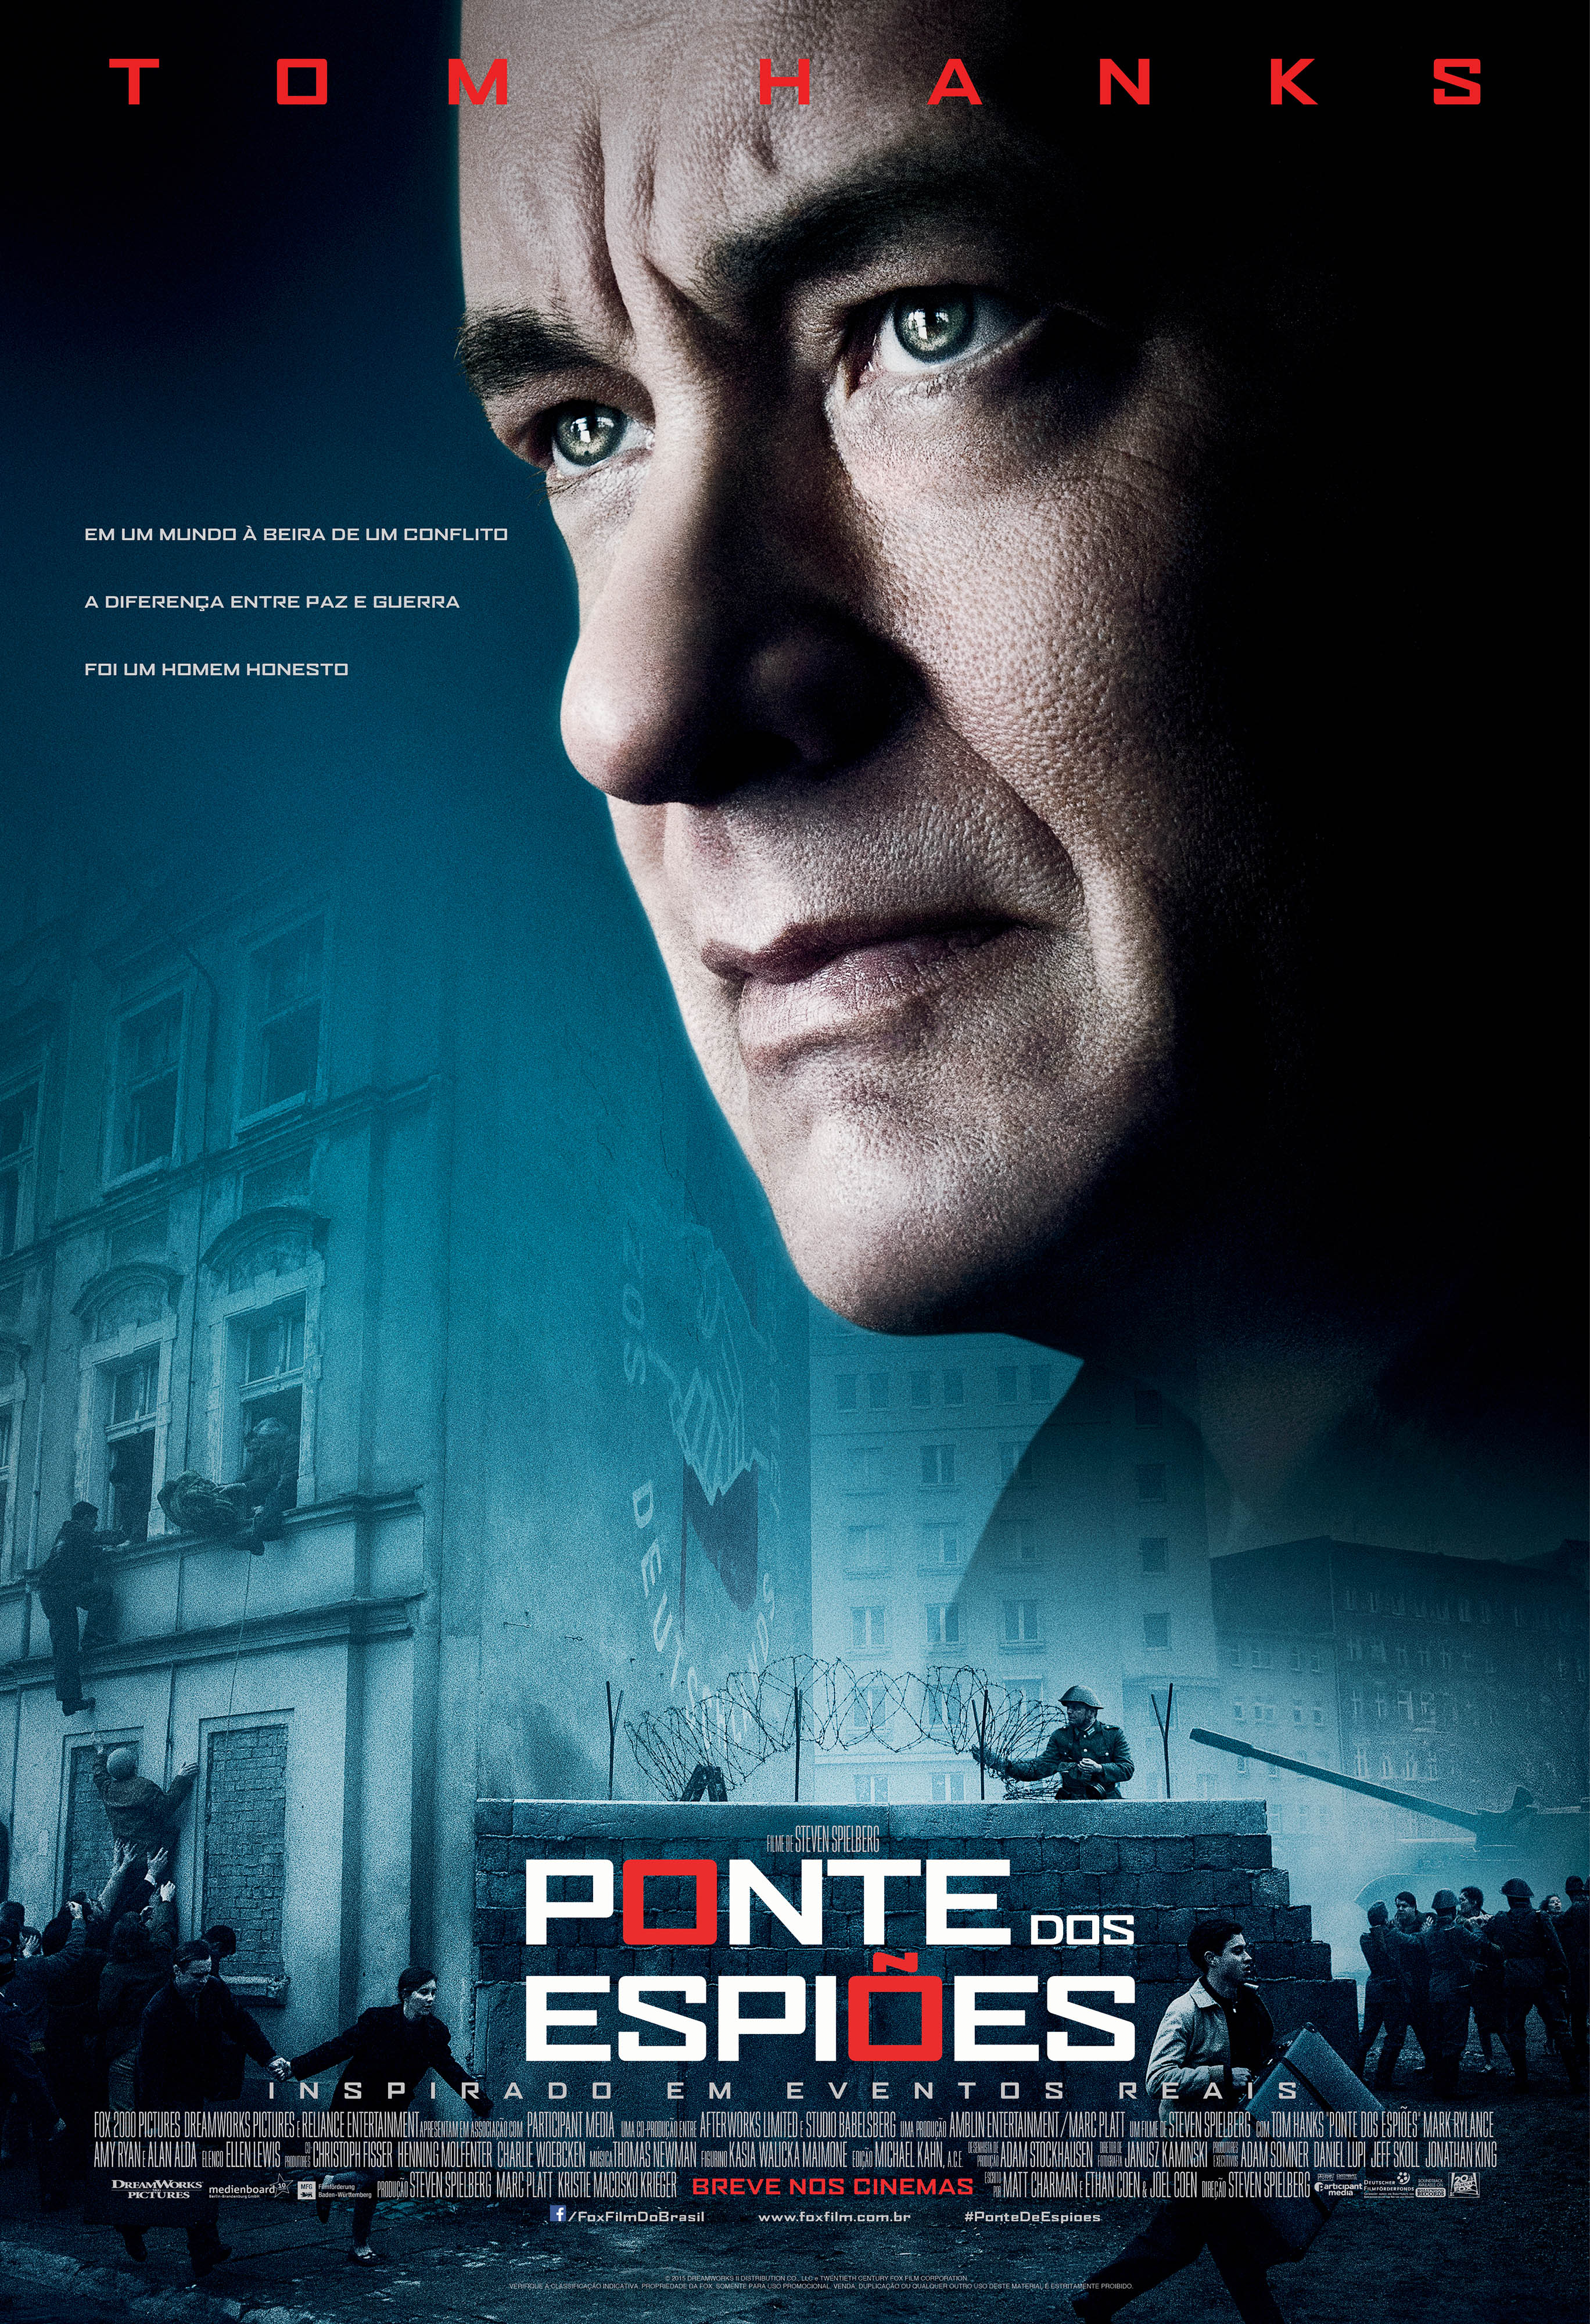 Ponte dos Espiões (2016) BRRip Blu-Ray 720p/1080p 5.1 CH Dublado Torrent